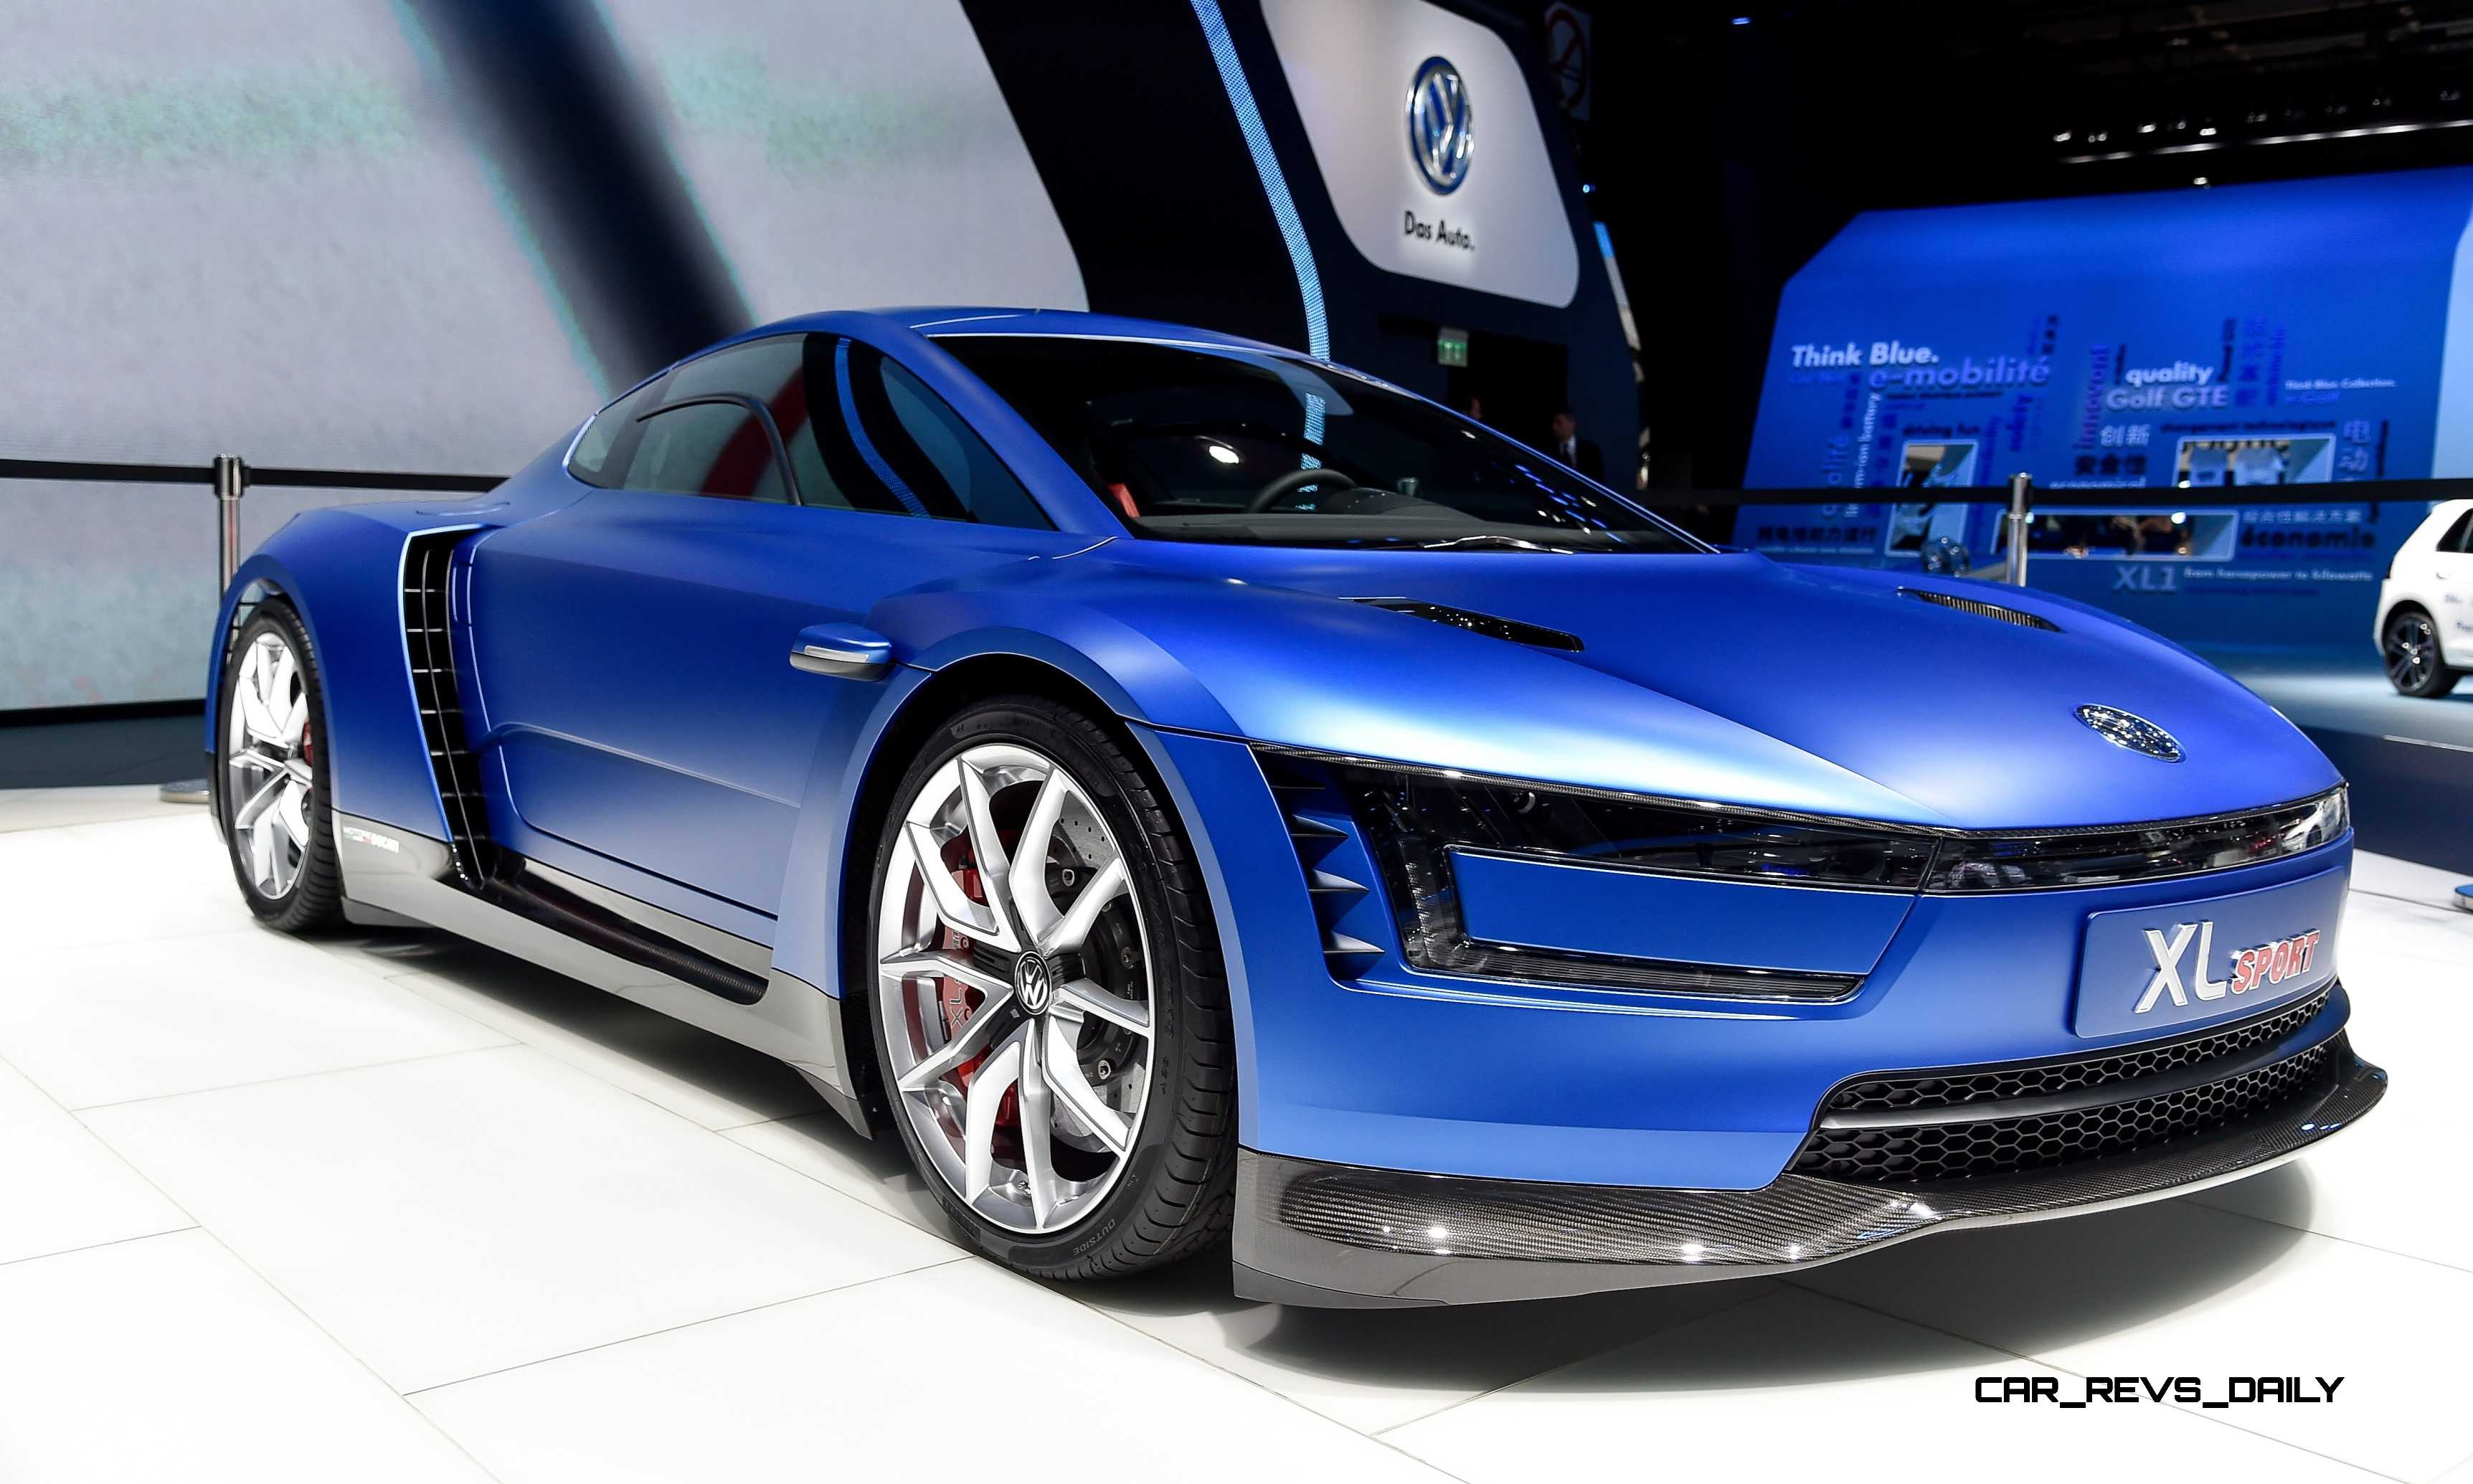 Sports Cars For Sale >> 2014 Volkswagen XL Sport Concept Makes One Seriously Sexy BMW i8 Competitor